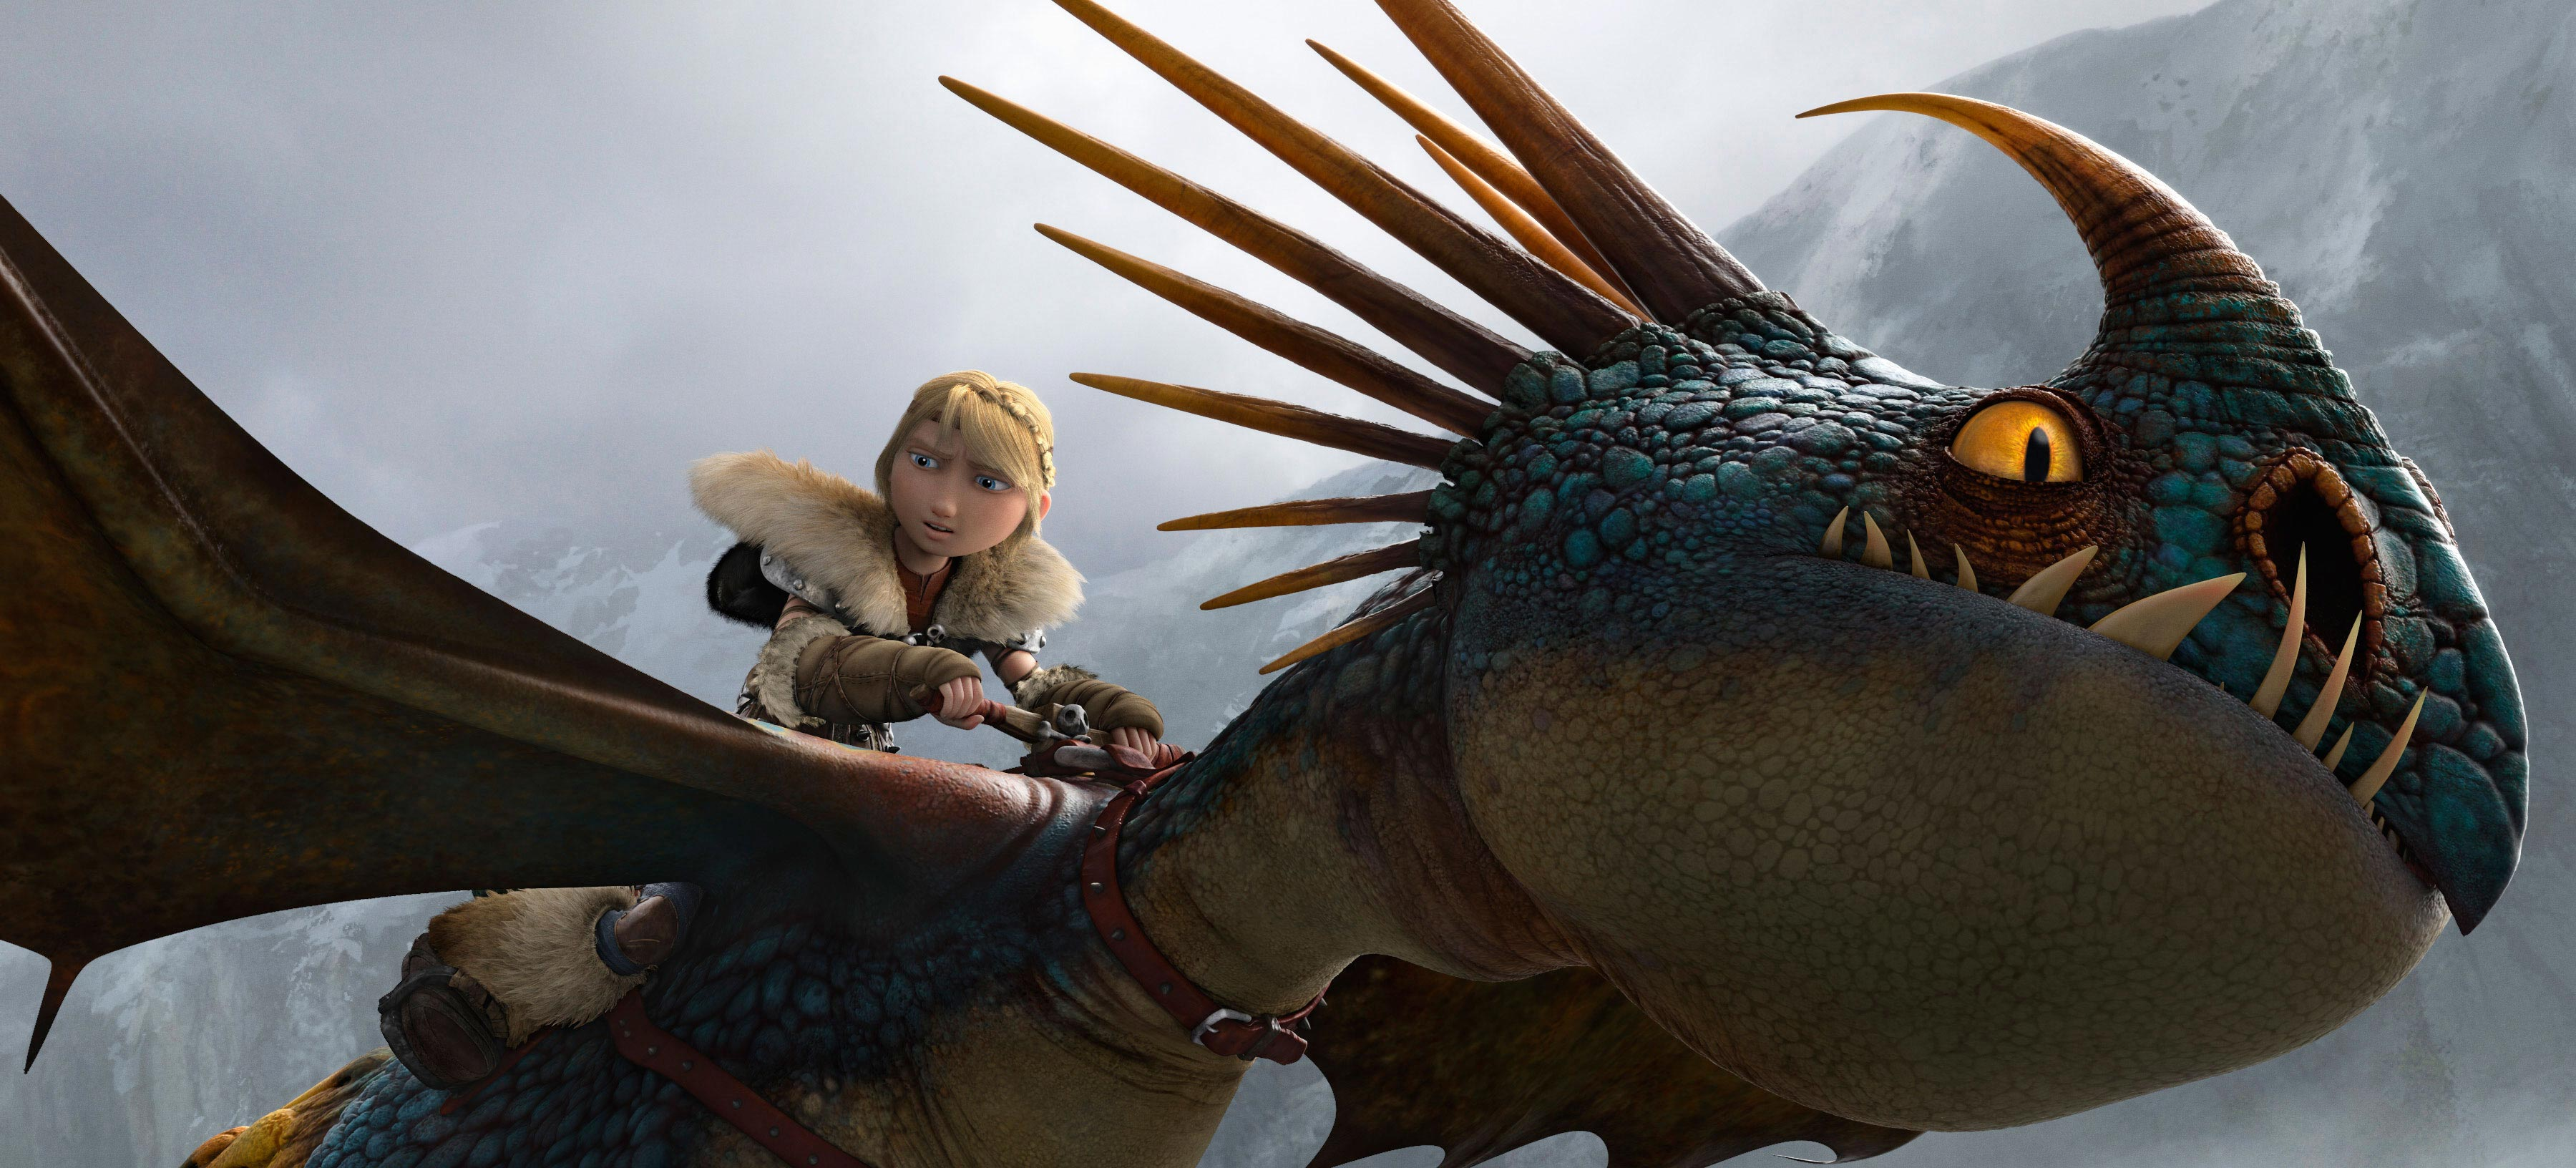 how to train your dragon 2 wallpaper hd collection